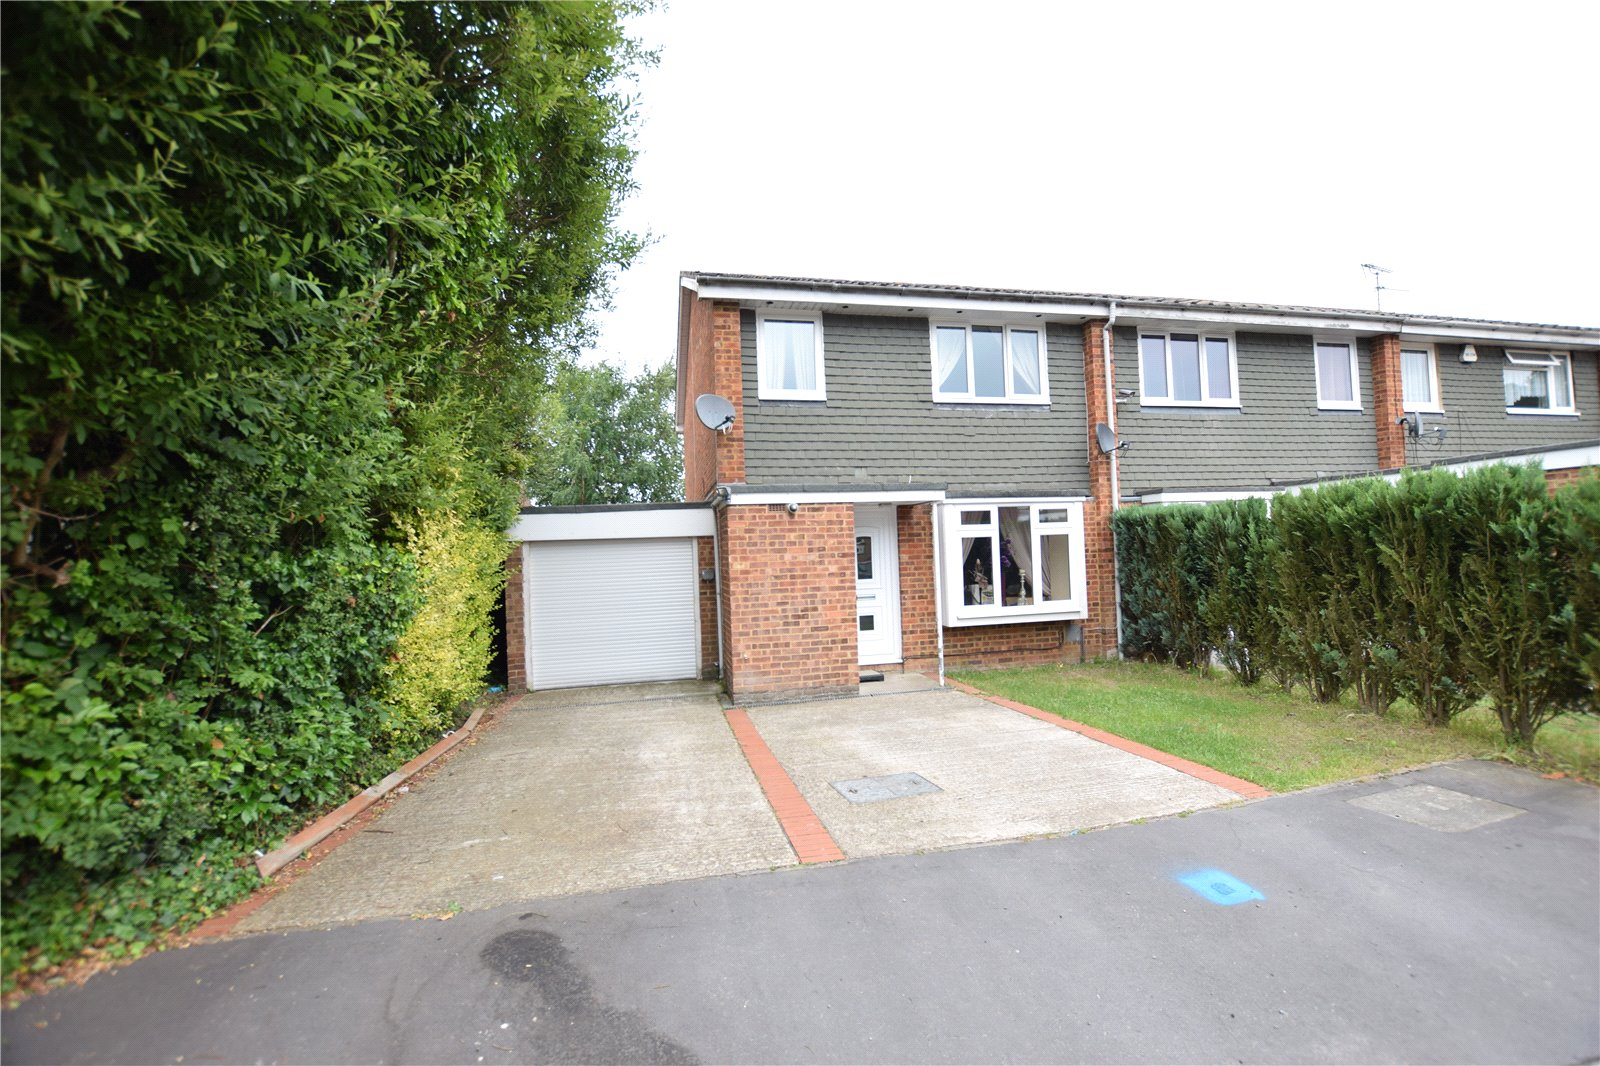 3 Bedrooms End Of Terrace House for sale in Knightswood, Bracknell, Berkshire, RG12